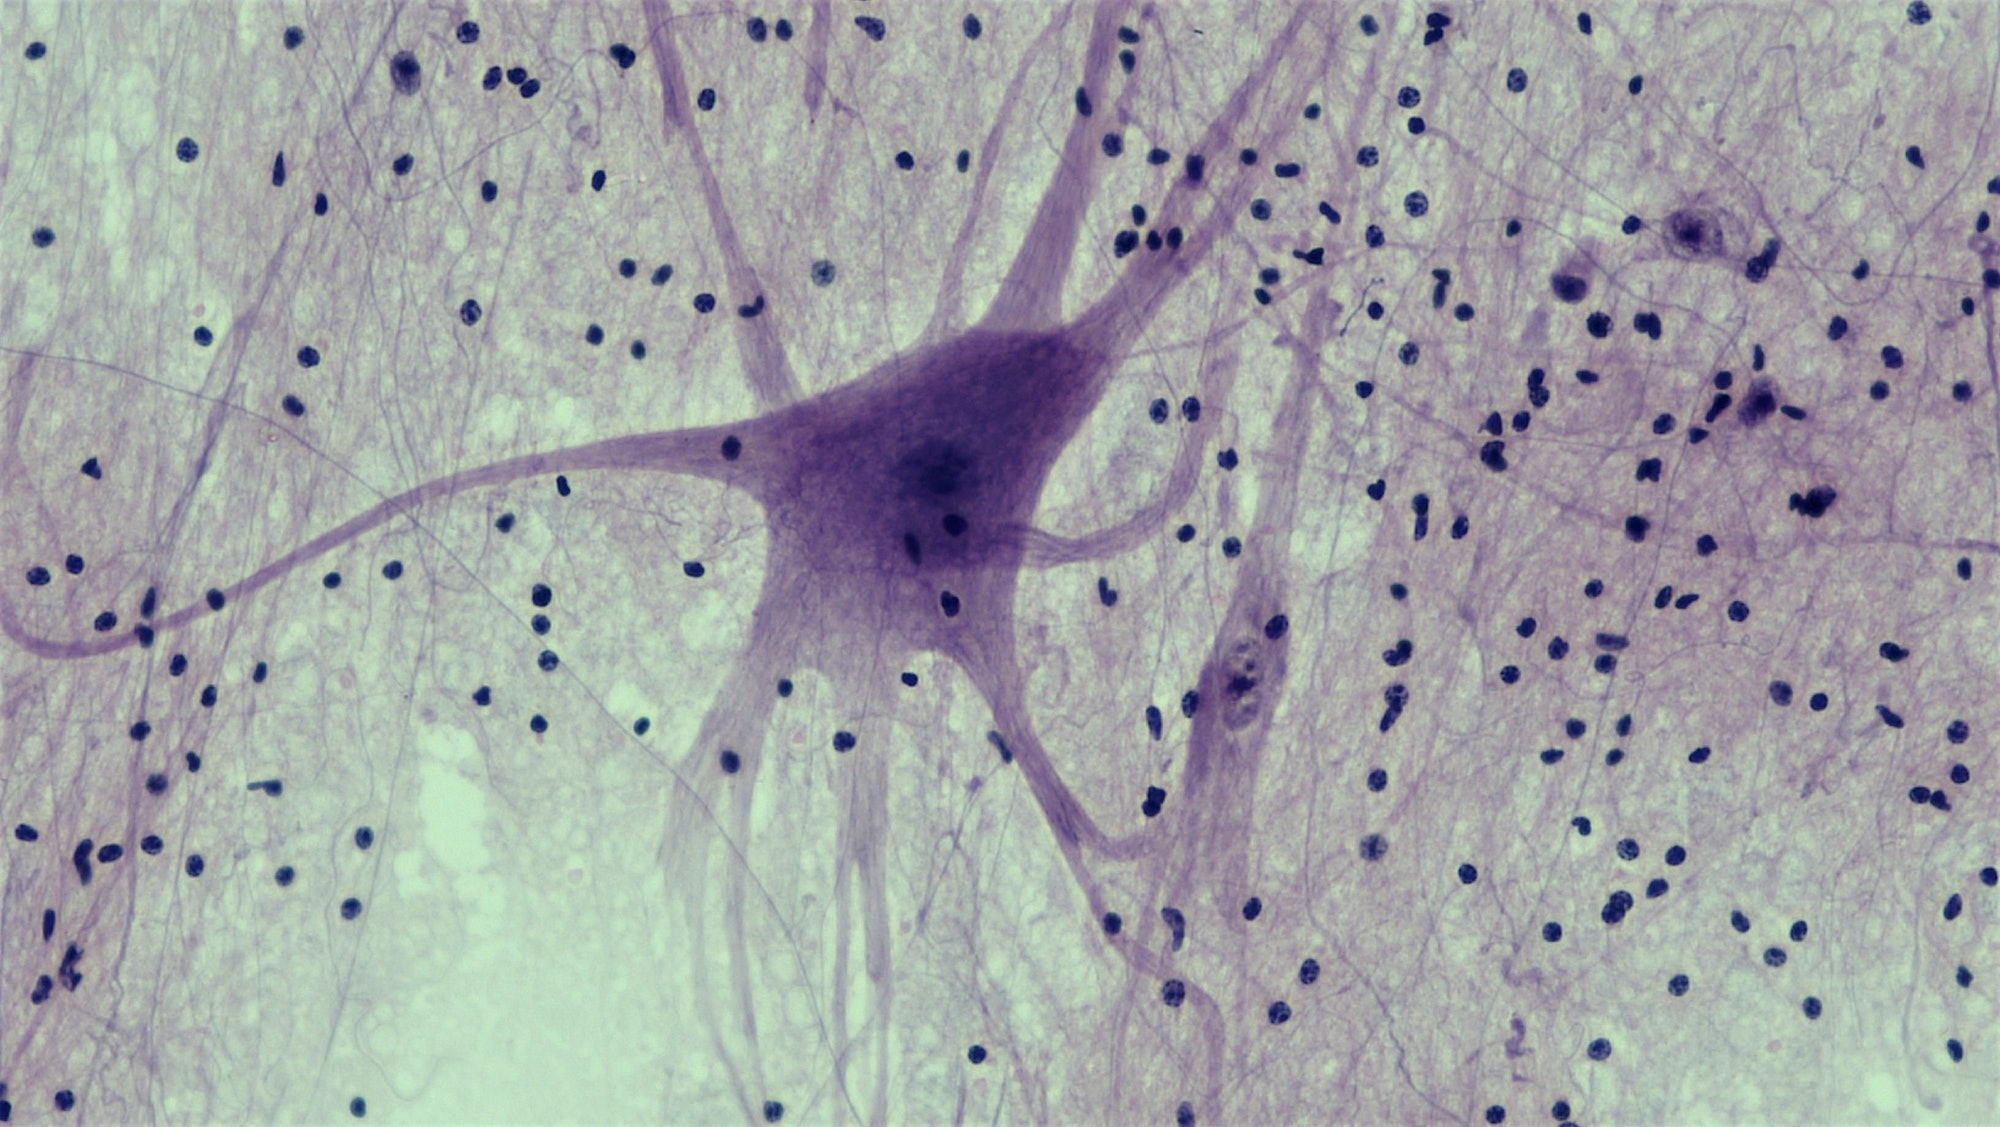 Nervous Tissue: Spinal Cord Motor Neuron